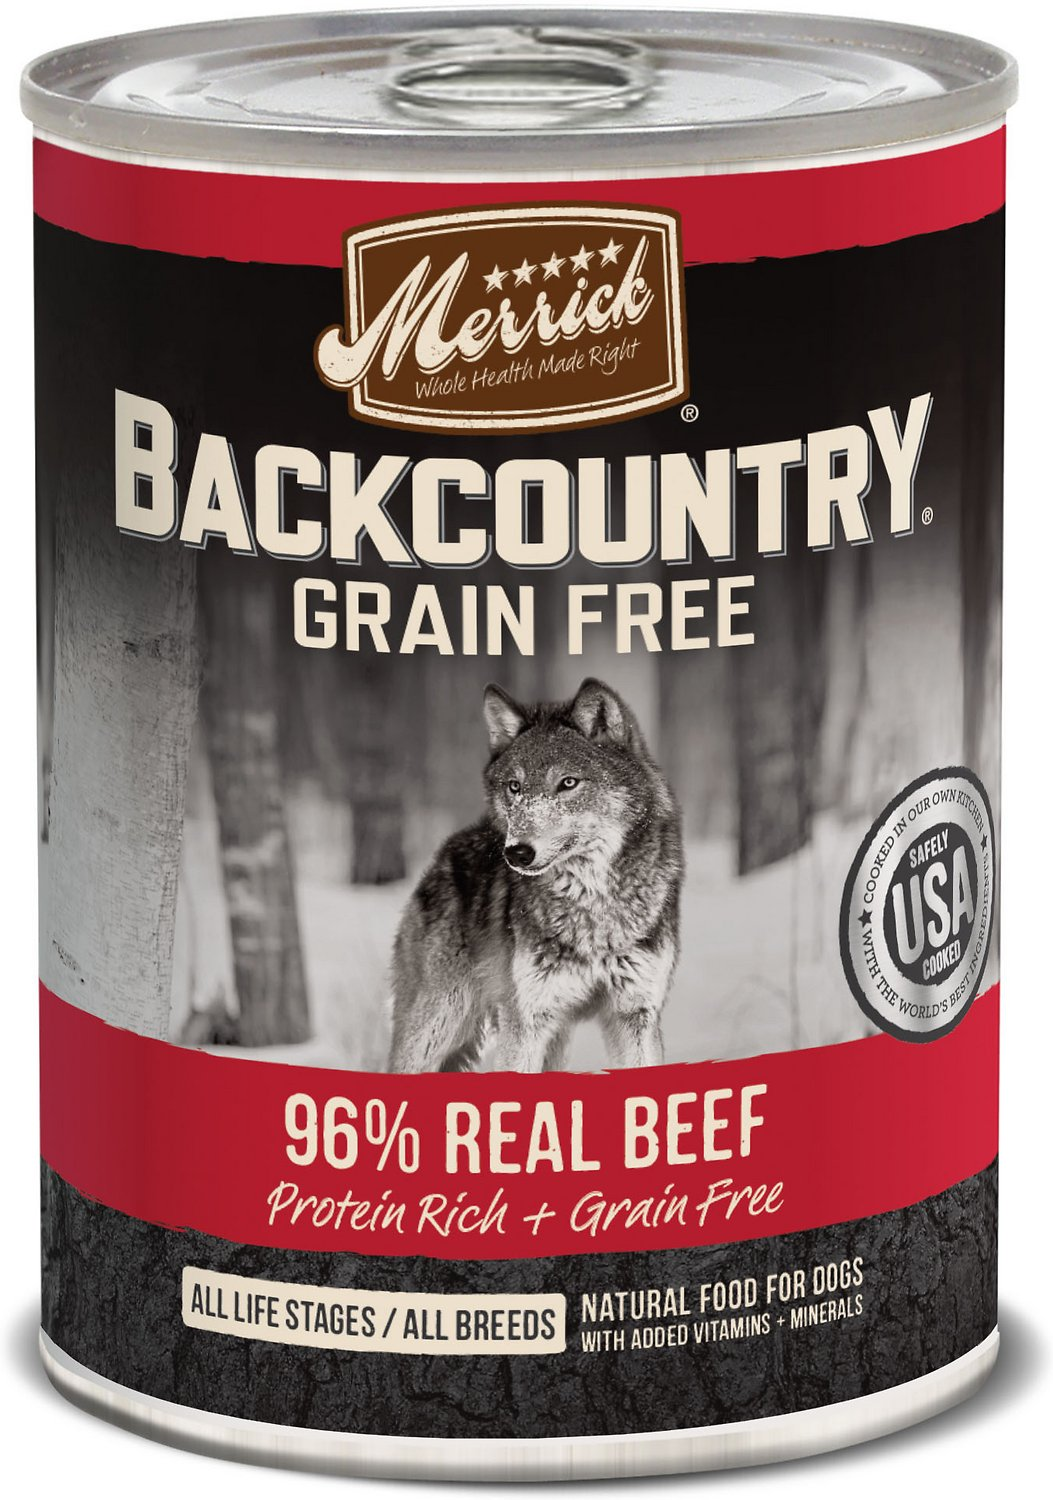 Merrick Backcountry Grain-Free 96% Real Beef Recipe Canned Dog Food Image